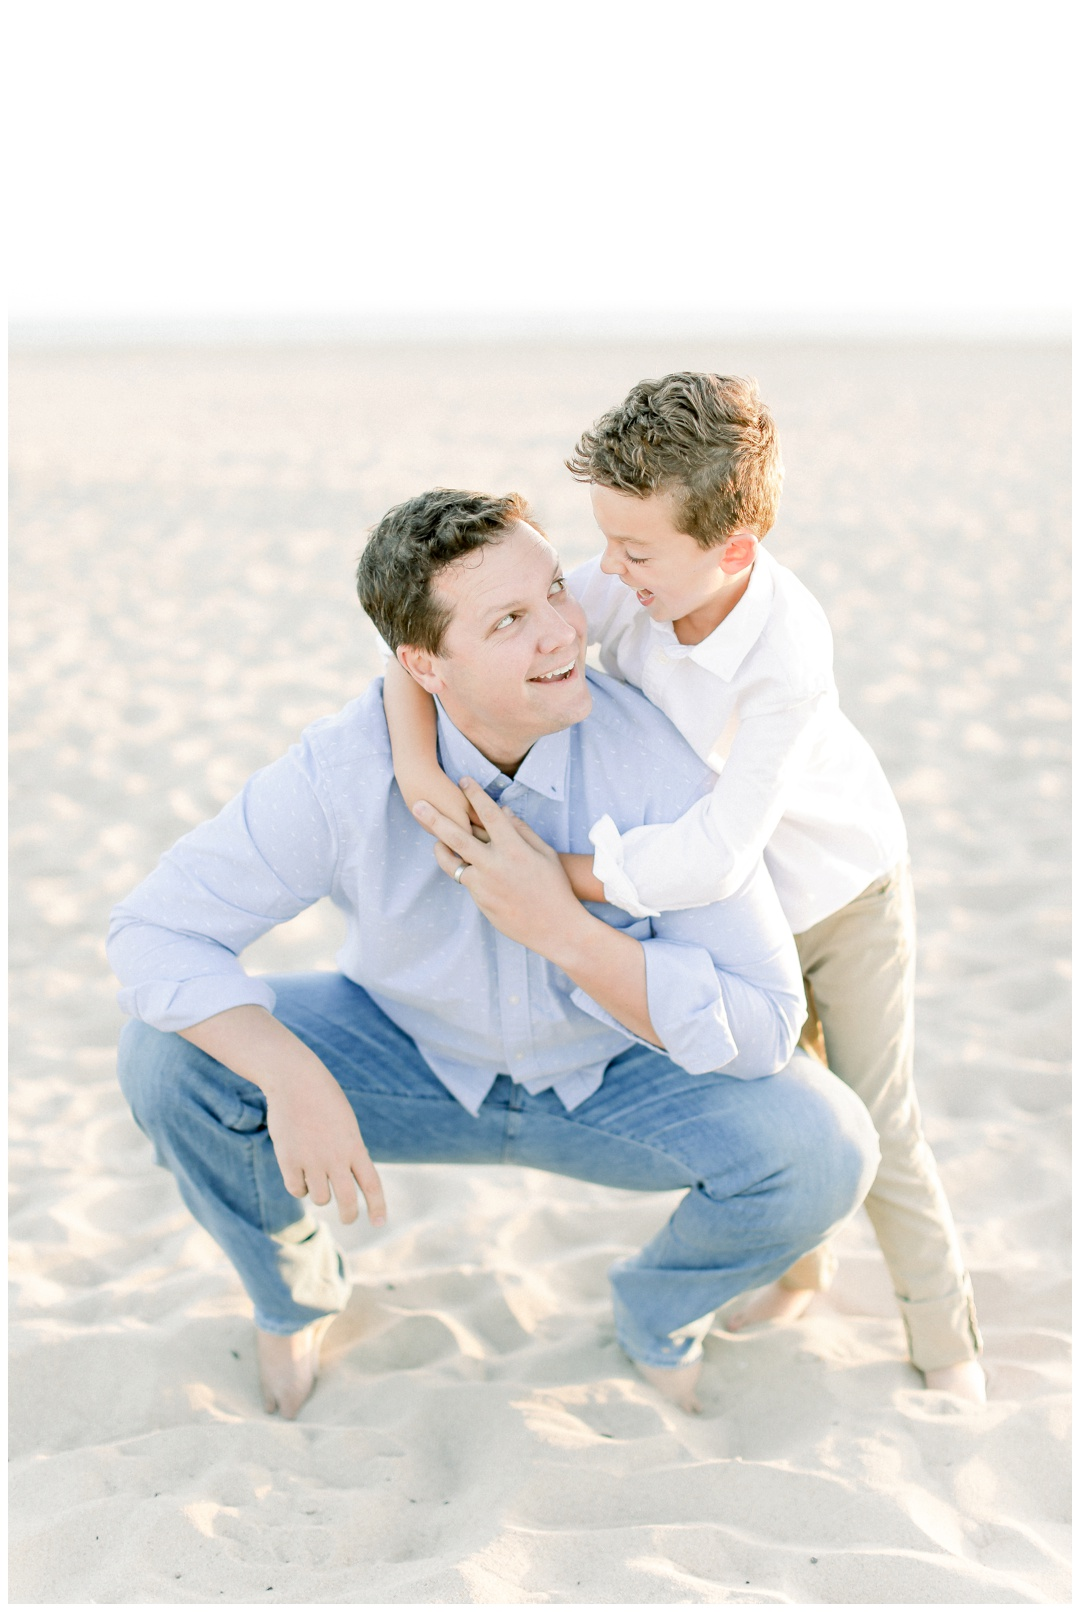 Newport_Beach_Family_Photographer_Newport_Beach_Newborn_Photographer_Orange_County_Family_Photographer_Cori_Kleckner_Photography_Huntington_Beach_San_Clemente_Family_Session_Photography__2340.jpg